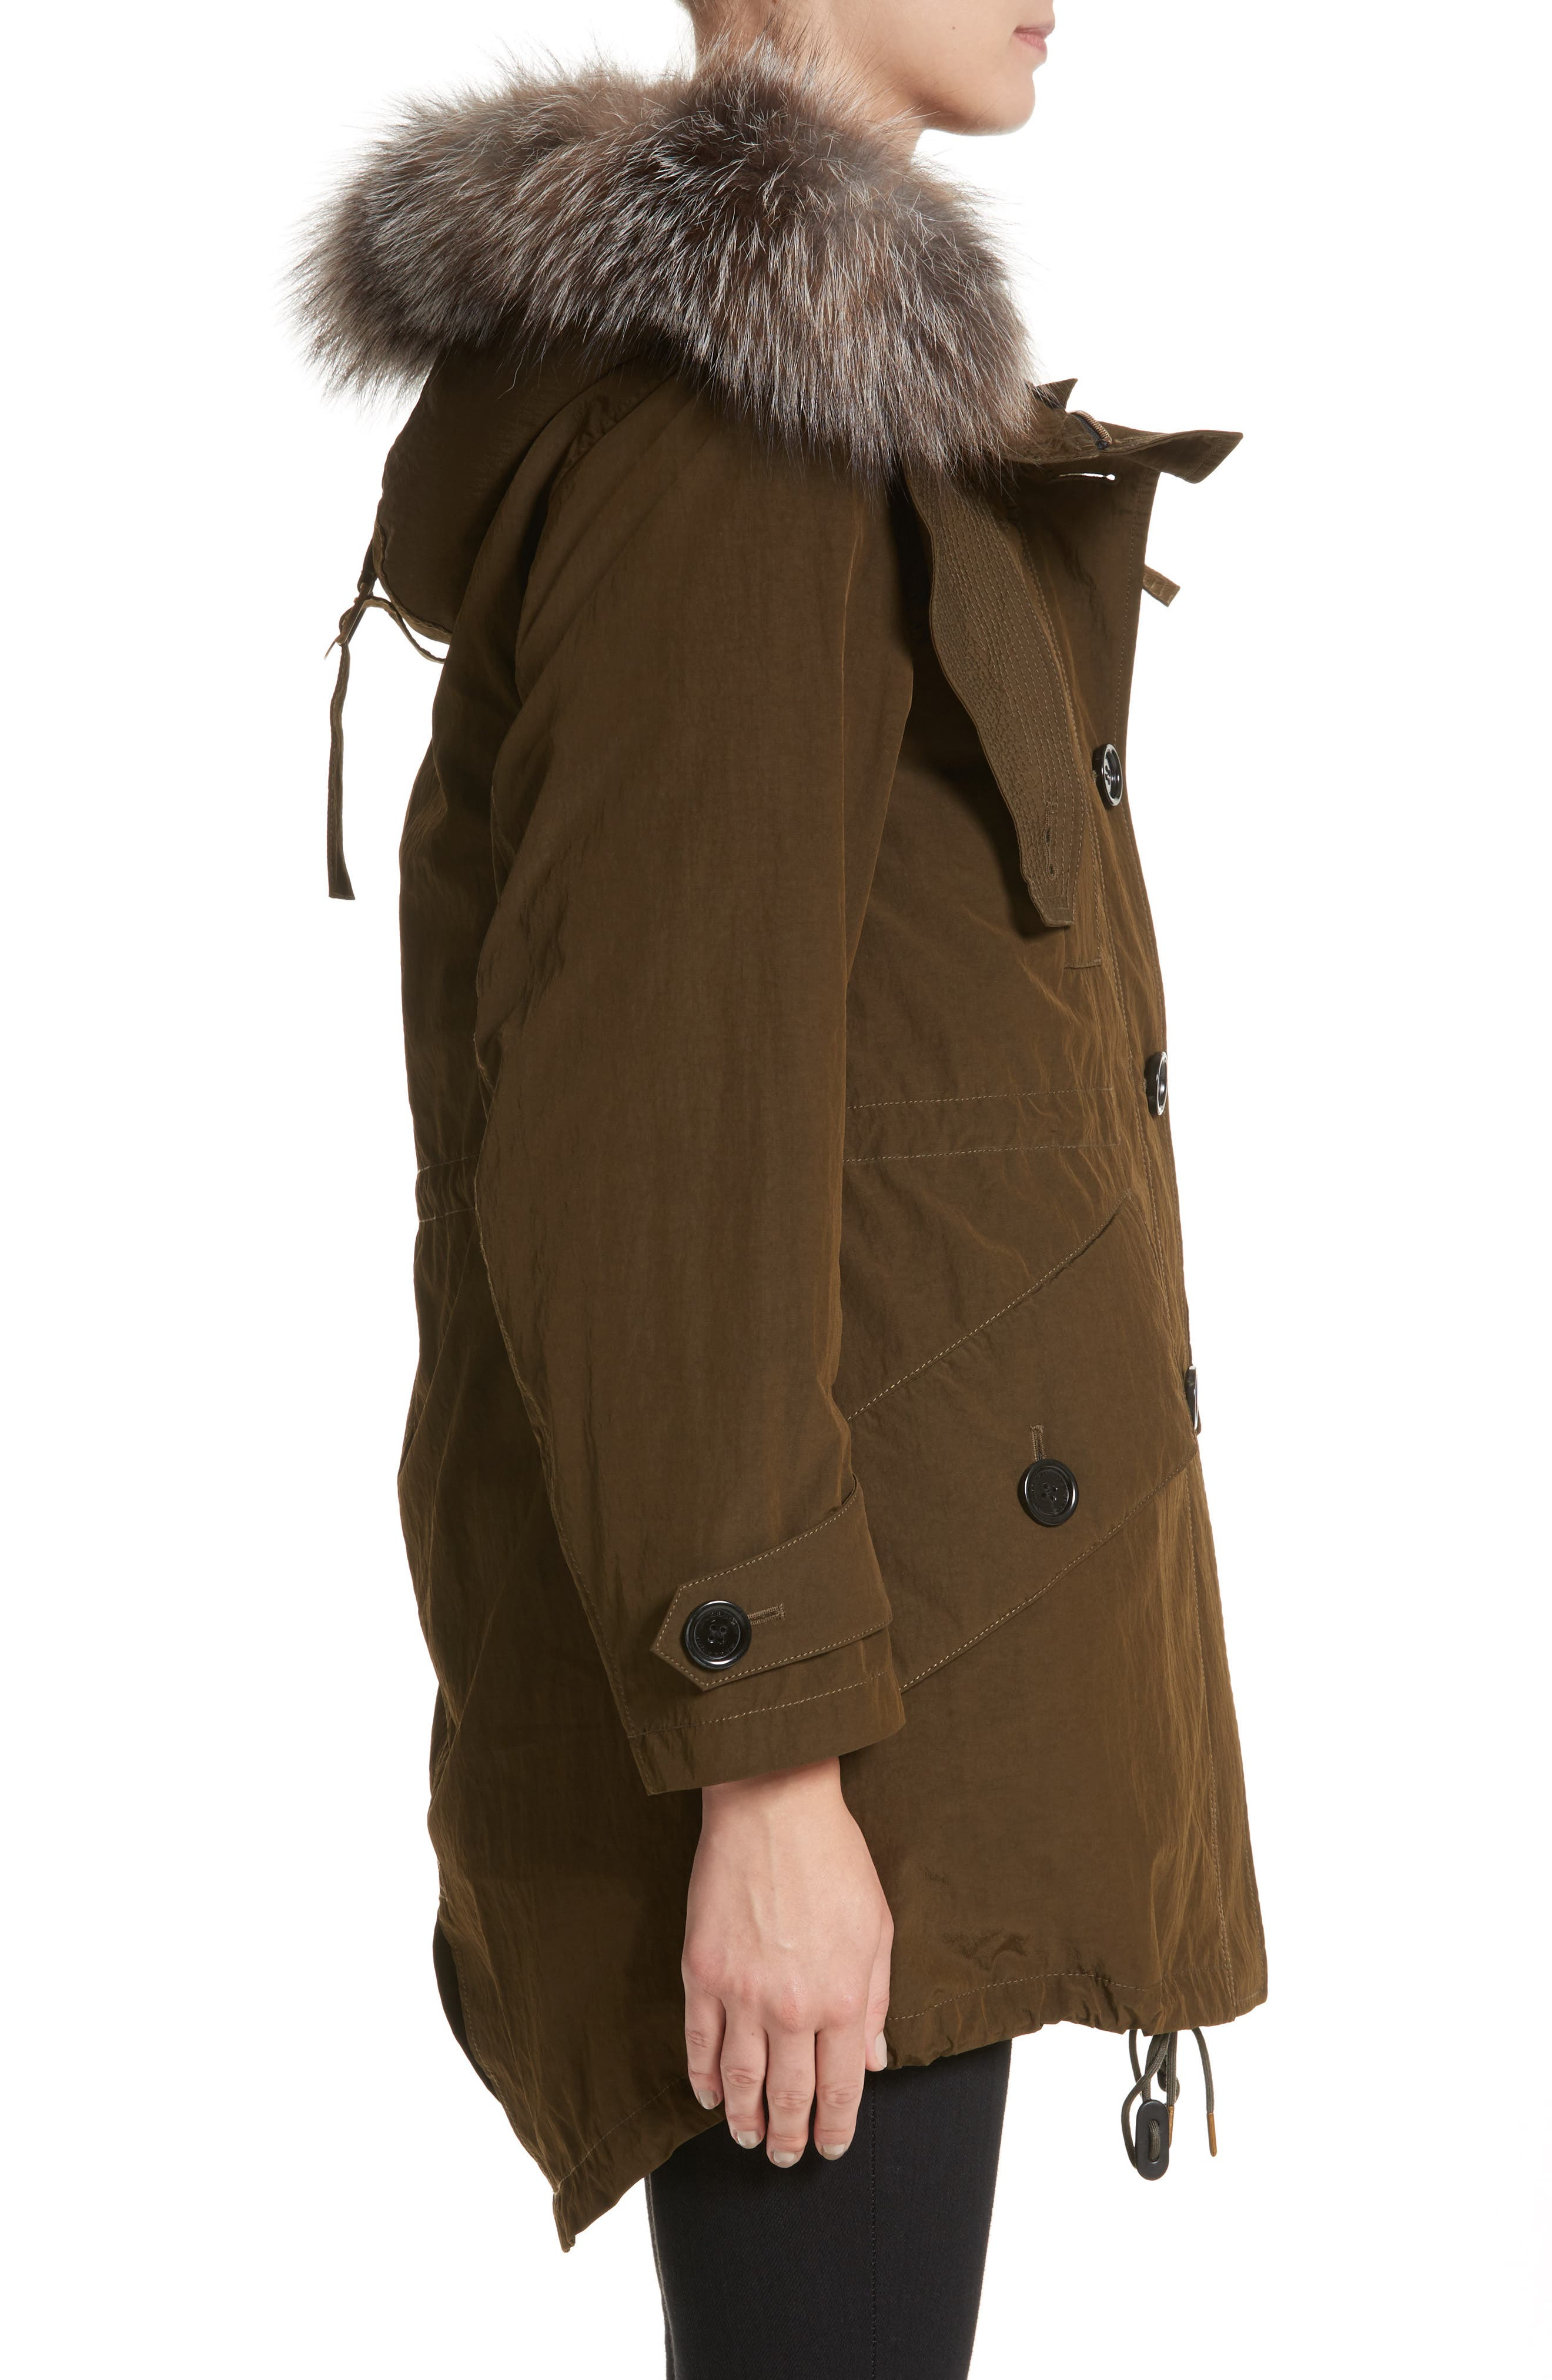 Ramsford 3-in-1 Hooded Parka with Genuine Fox Fur & Genuine Shearling Trim,                             Alternate thumbnail 4, color,                             301